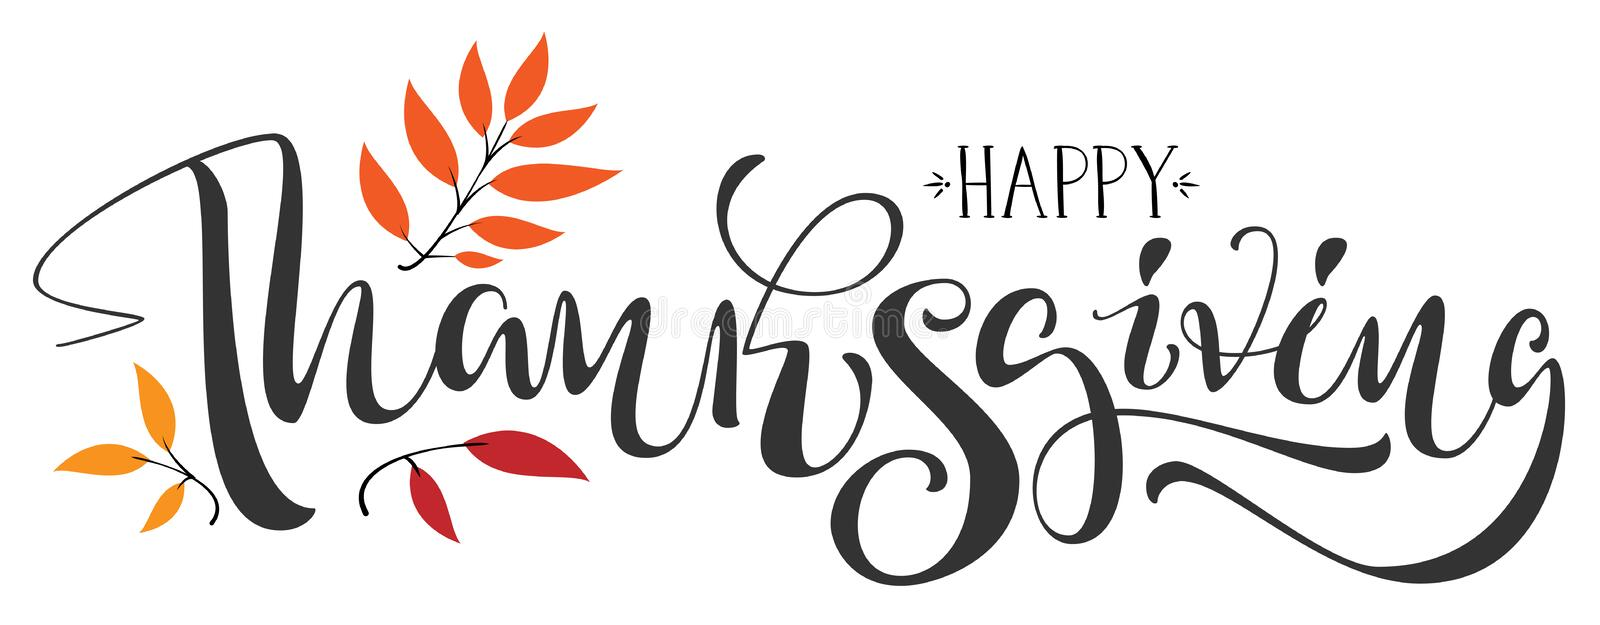 Happy Thanksgiving calligraphy text for greeting card. Isolated on white vector illustration